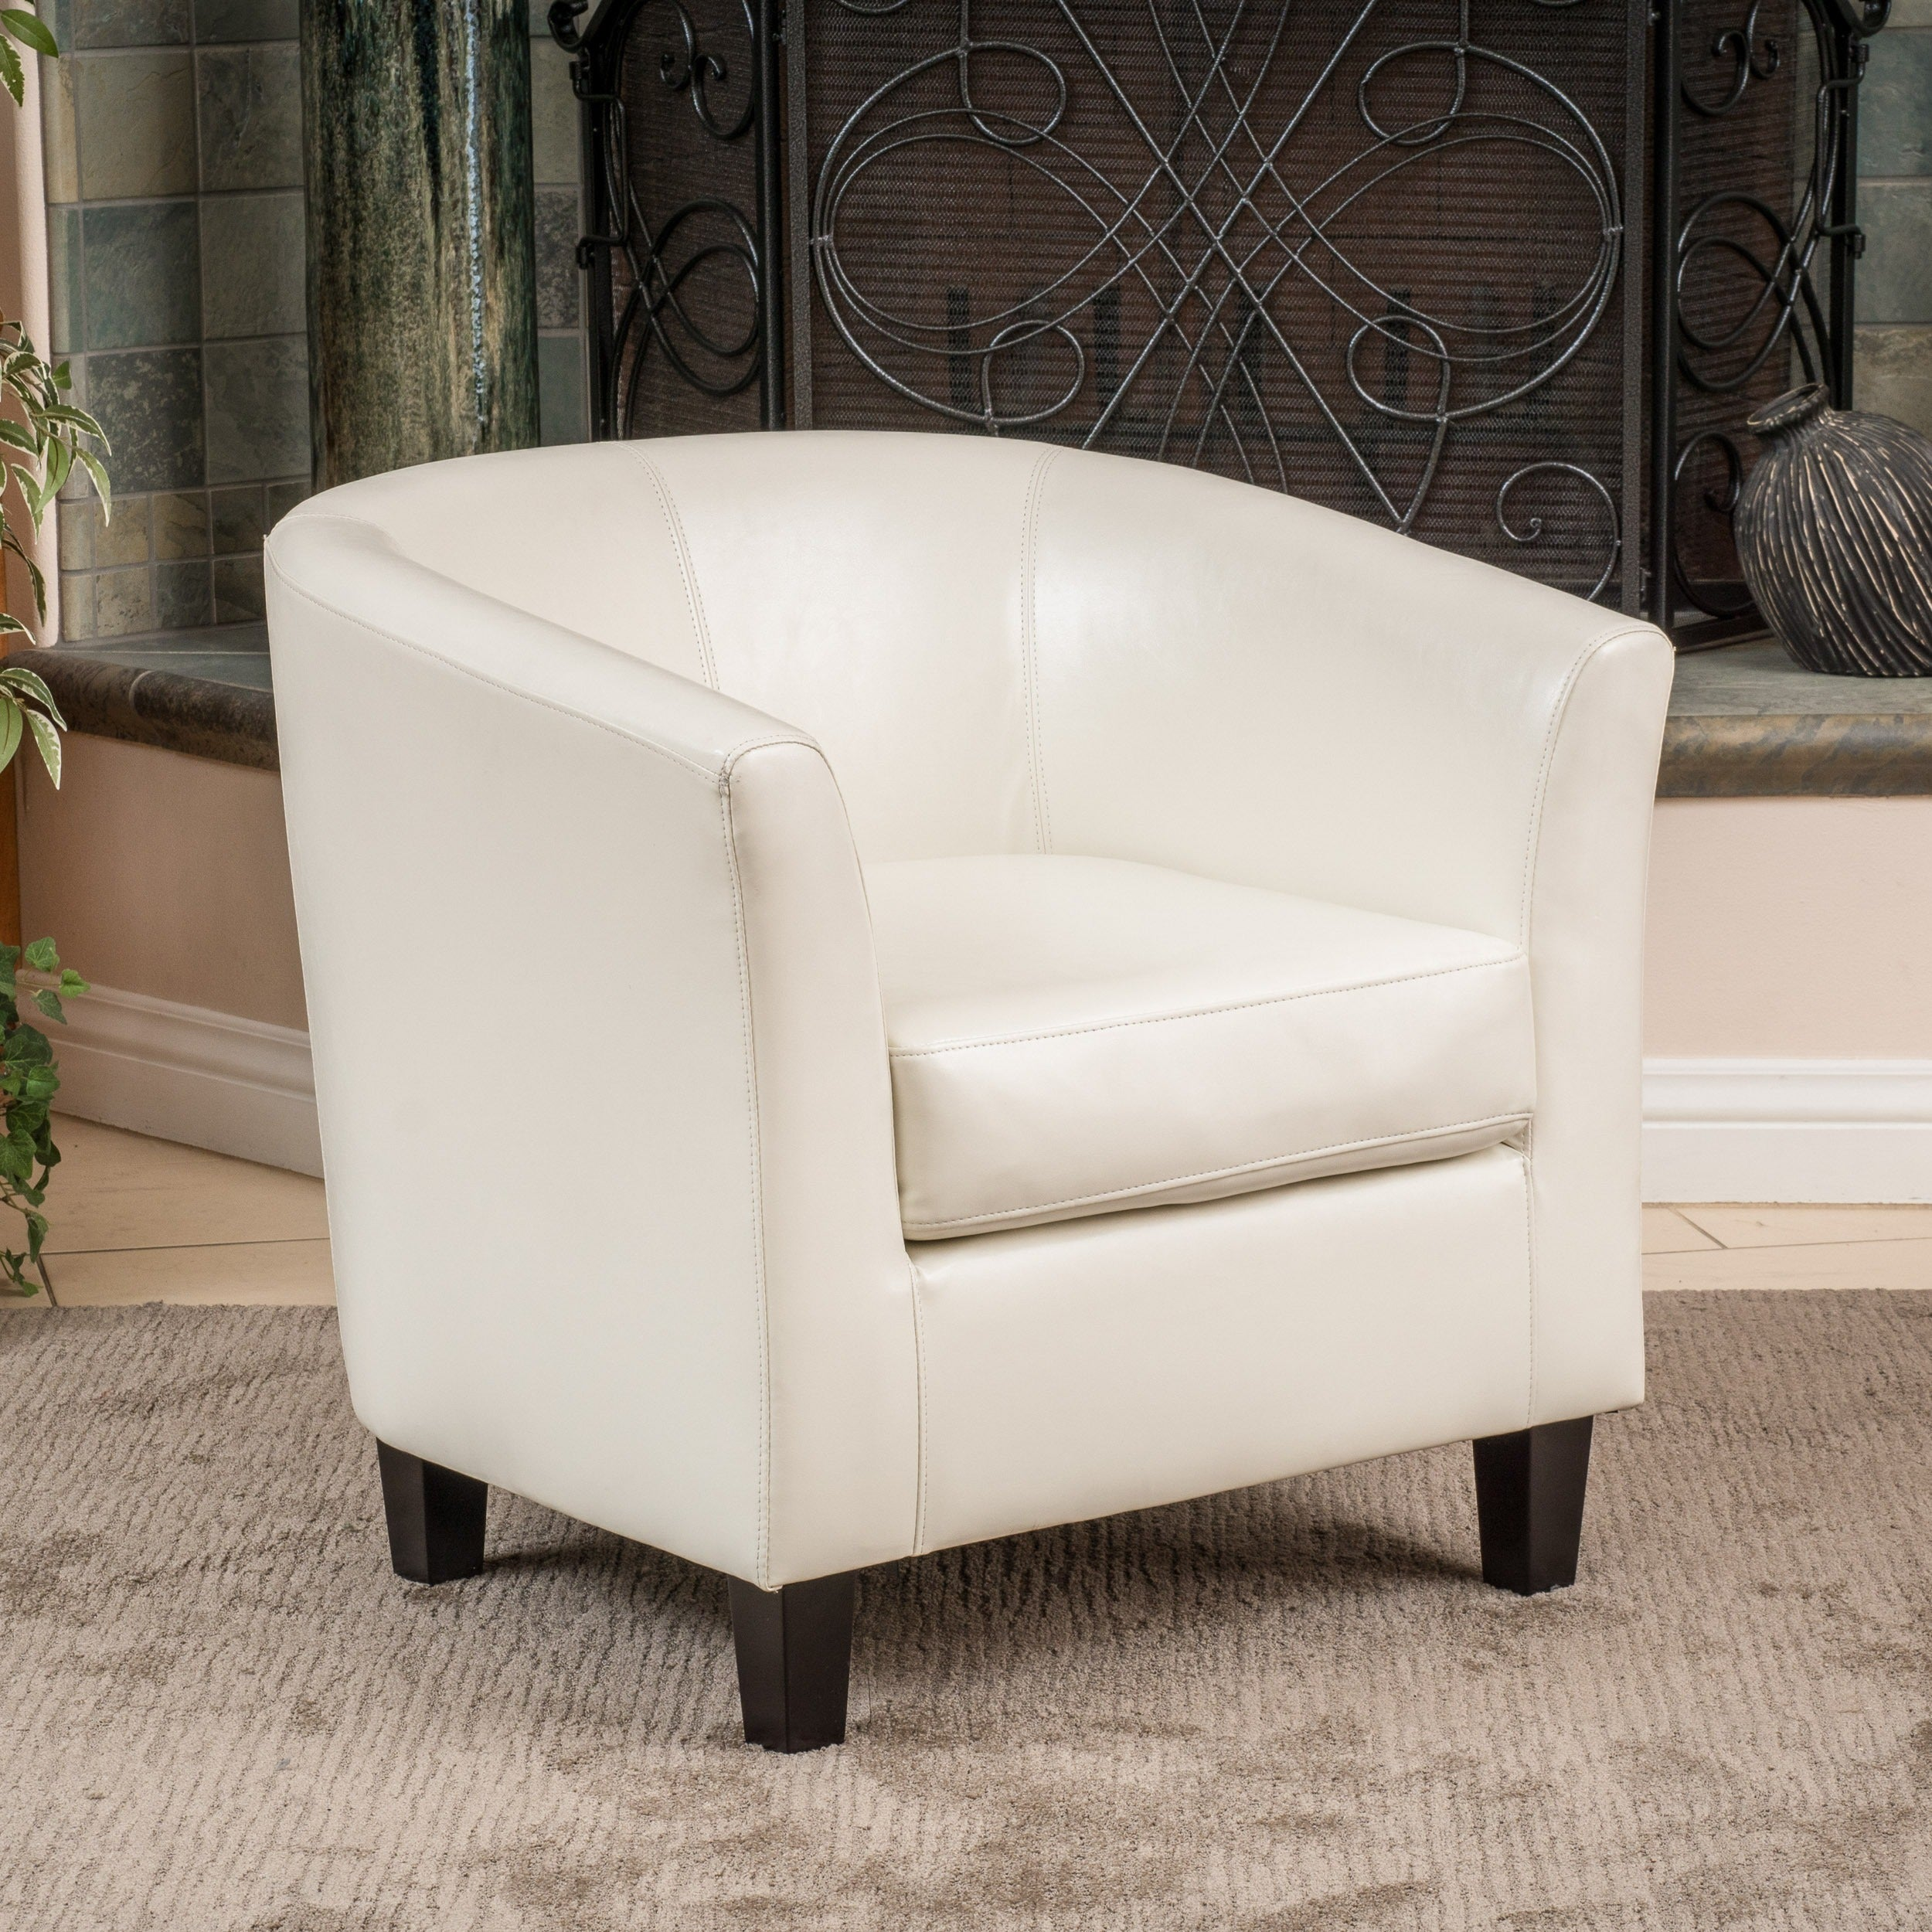 Good Shop Preston Bonded Leather Ivory Club Chair By Christopher Knight Home    On Sale   Free Shipping Today   Overstock.com   5688768